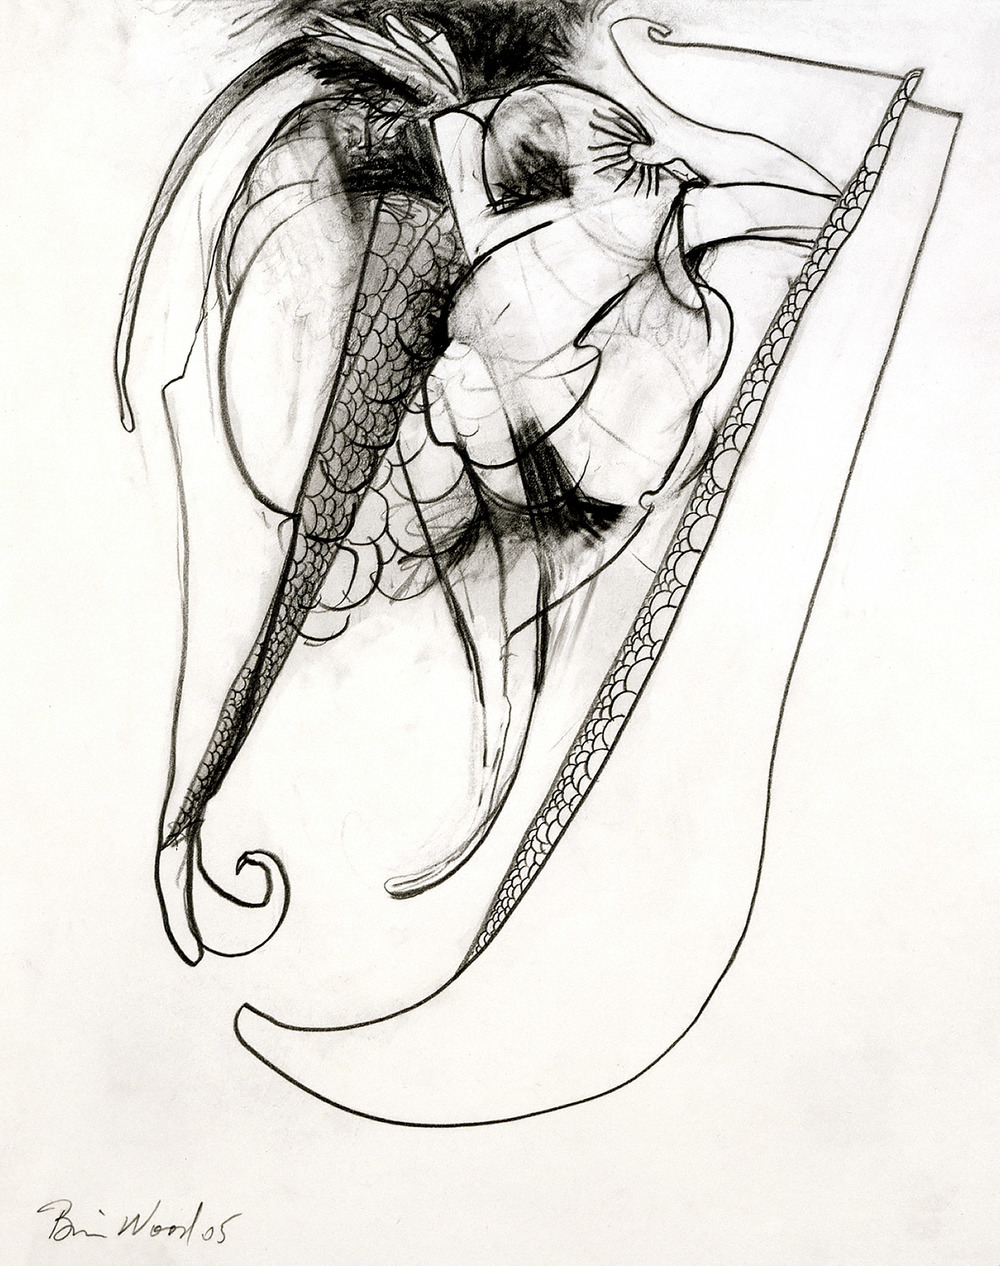 """Brian Wood <br> """"Hook"""" <br> Graphite on paper <br> 14 x 11 in."""